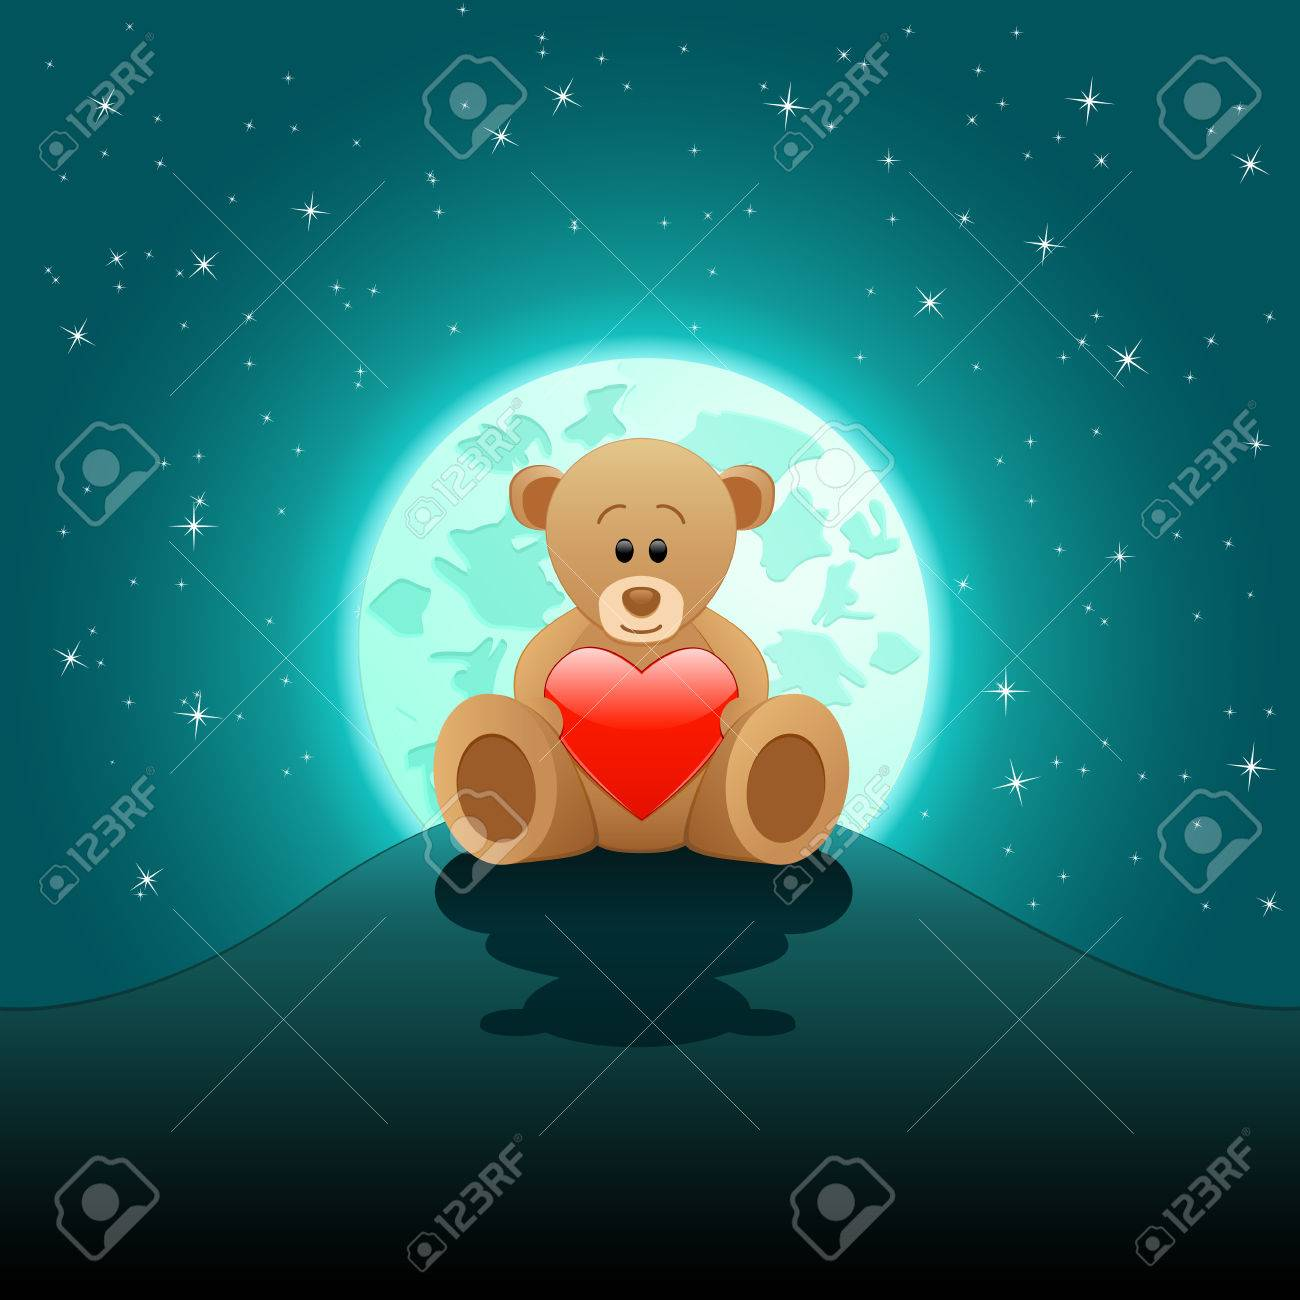 cute Teddy bear with red heart in the moonlight Stock Vector - 8678927